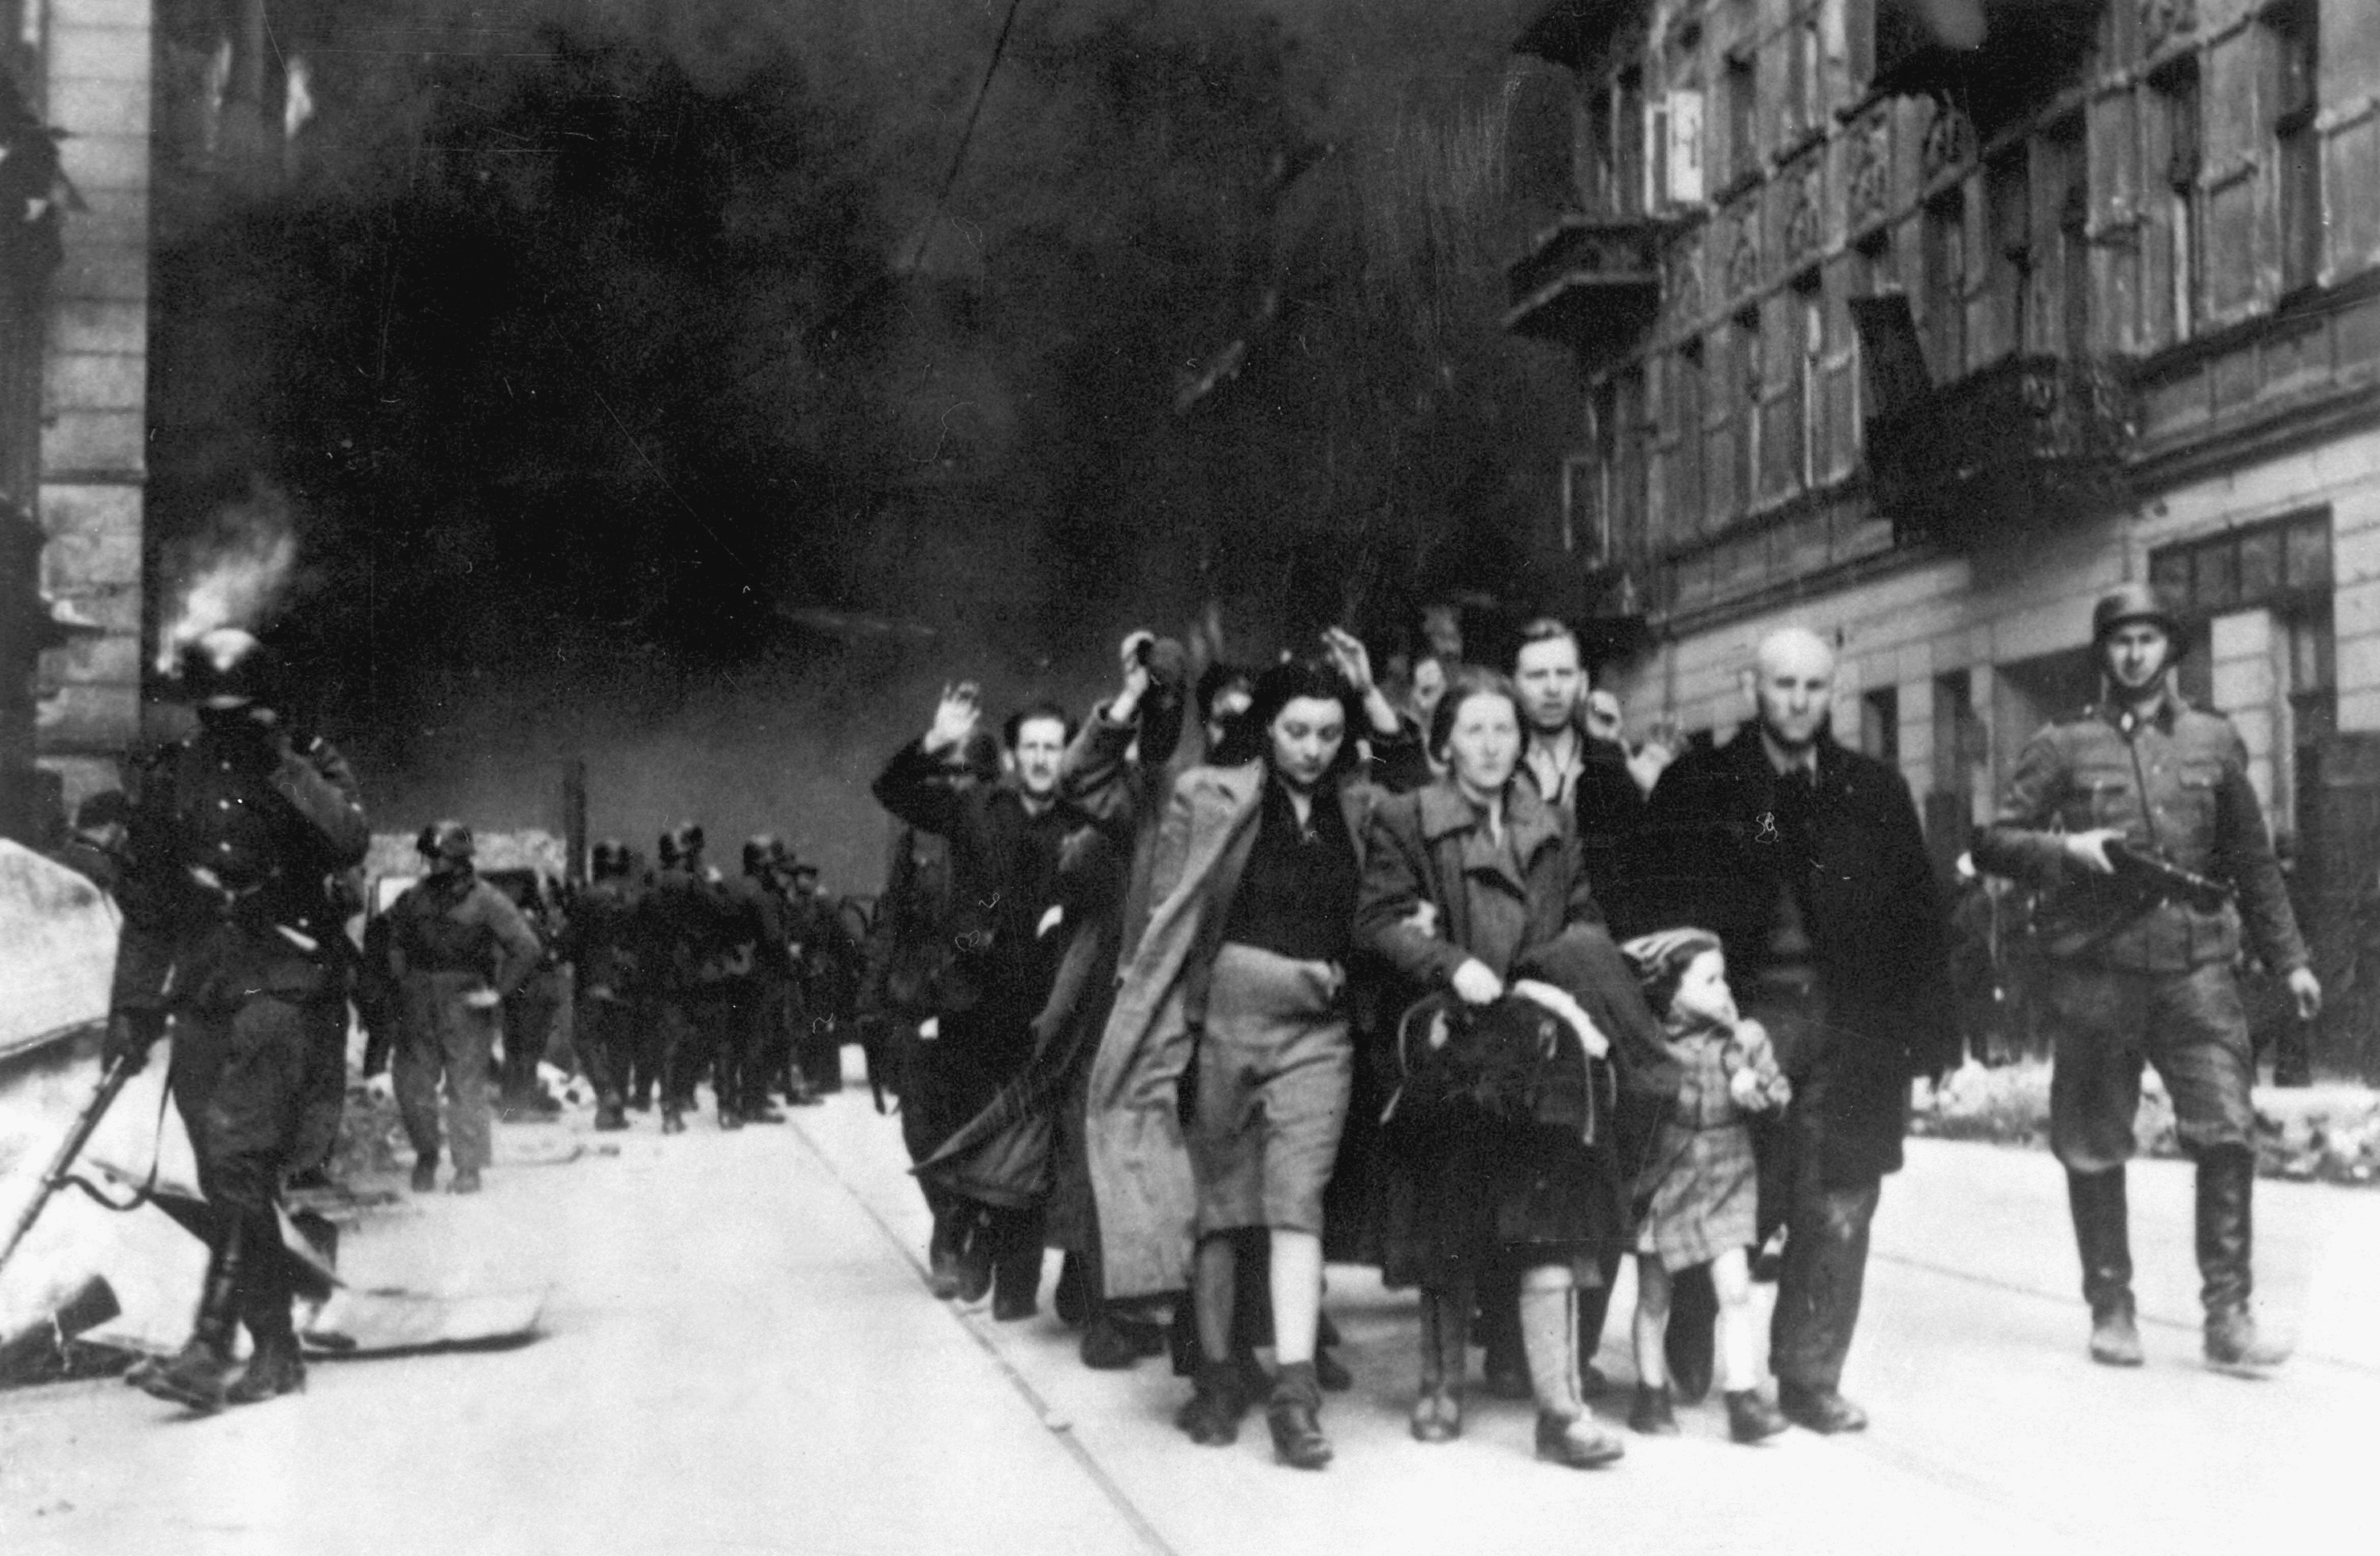 Jews in the Warsaw Ghetto are lead to a deportation point sometime between April 19 and May 16, 1943